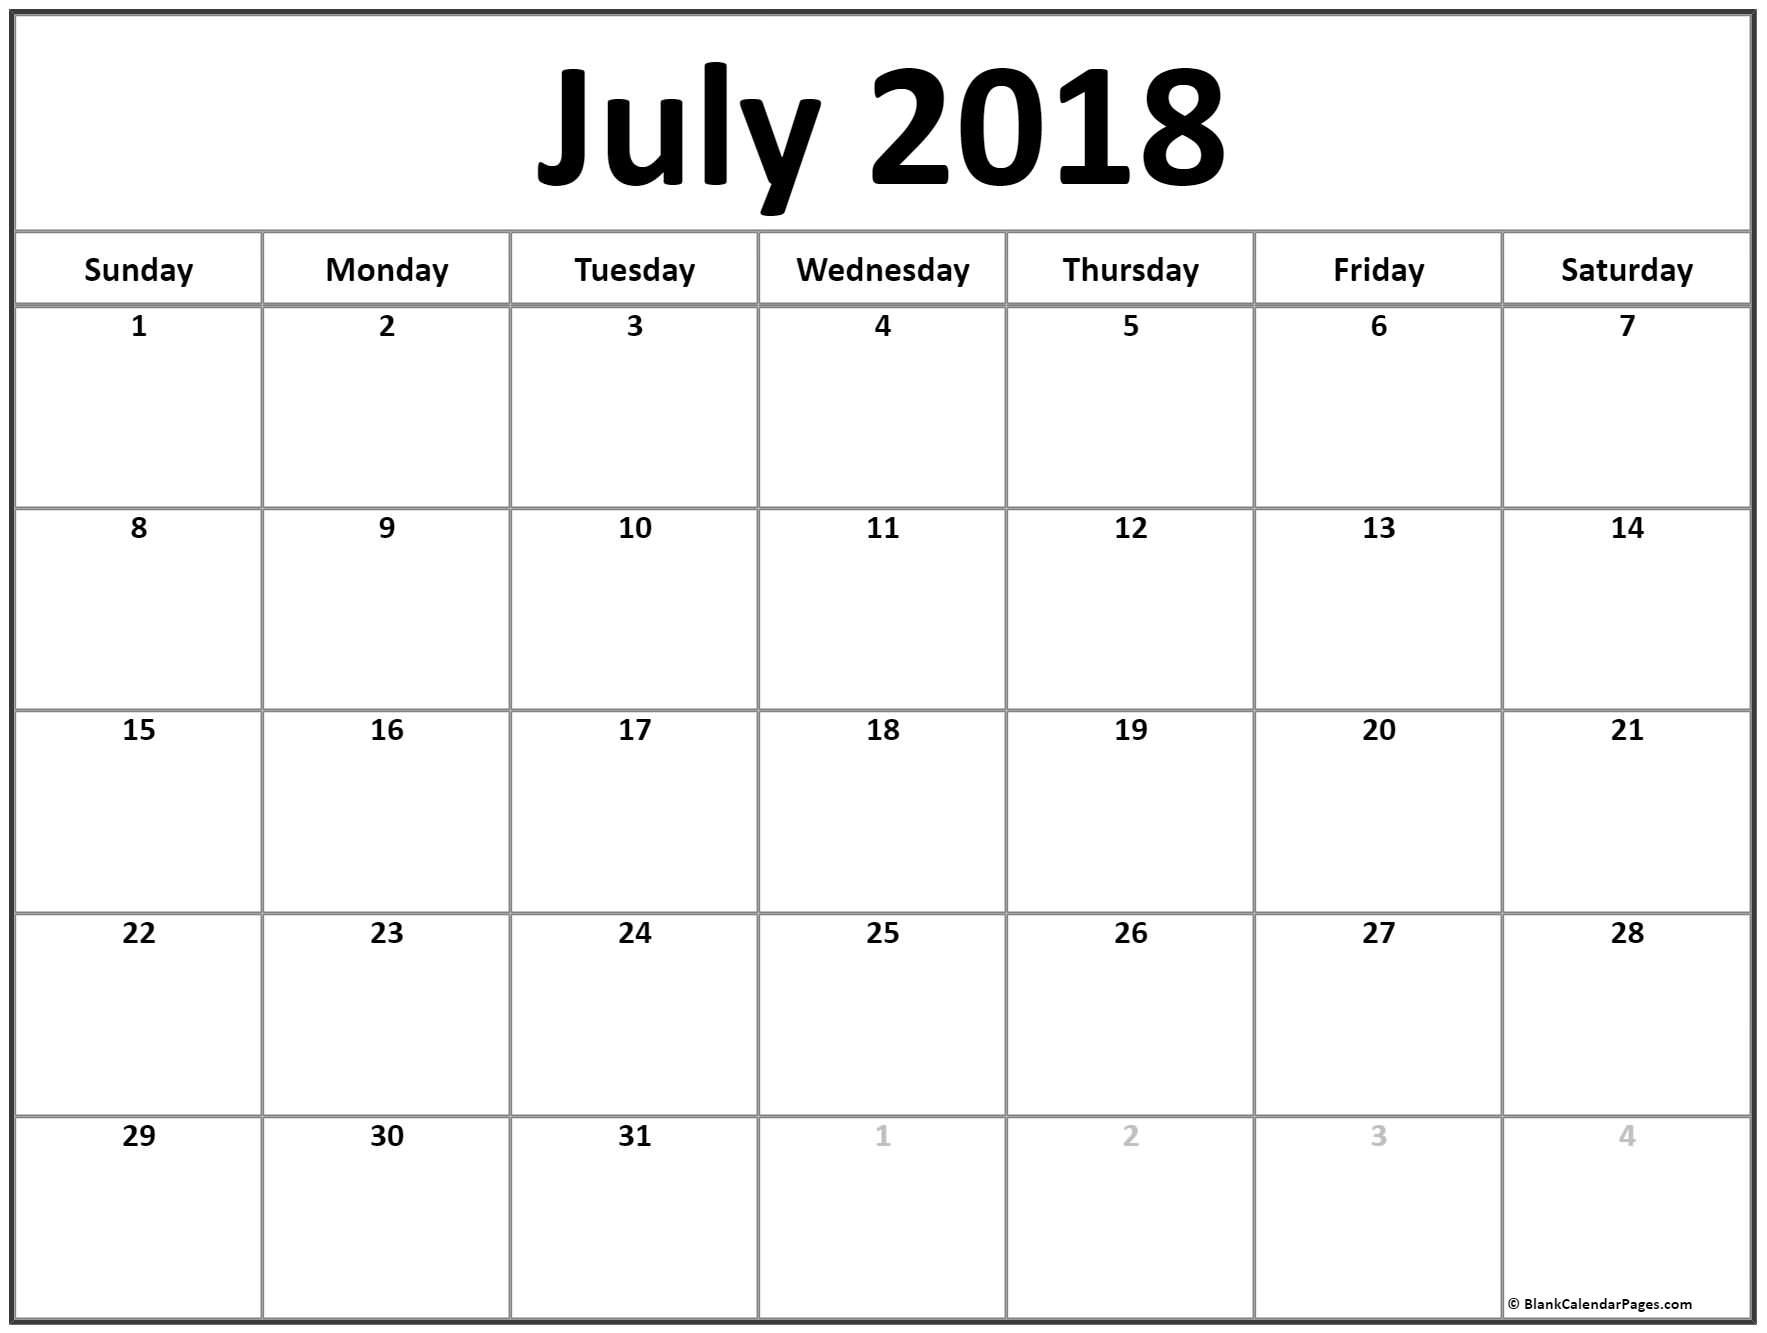 July 2018 Calendar July Calendar 2018 Printable And Free Blank Calendar July Printable Printable Calendar Template Monthly Calendar Printable July Calendar